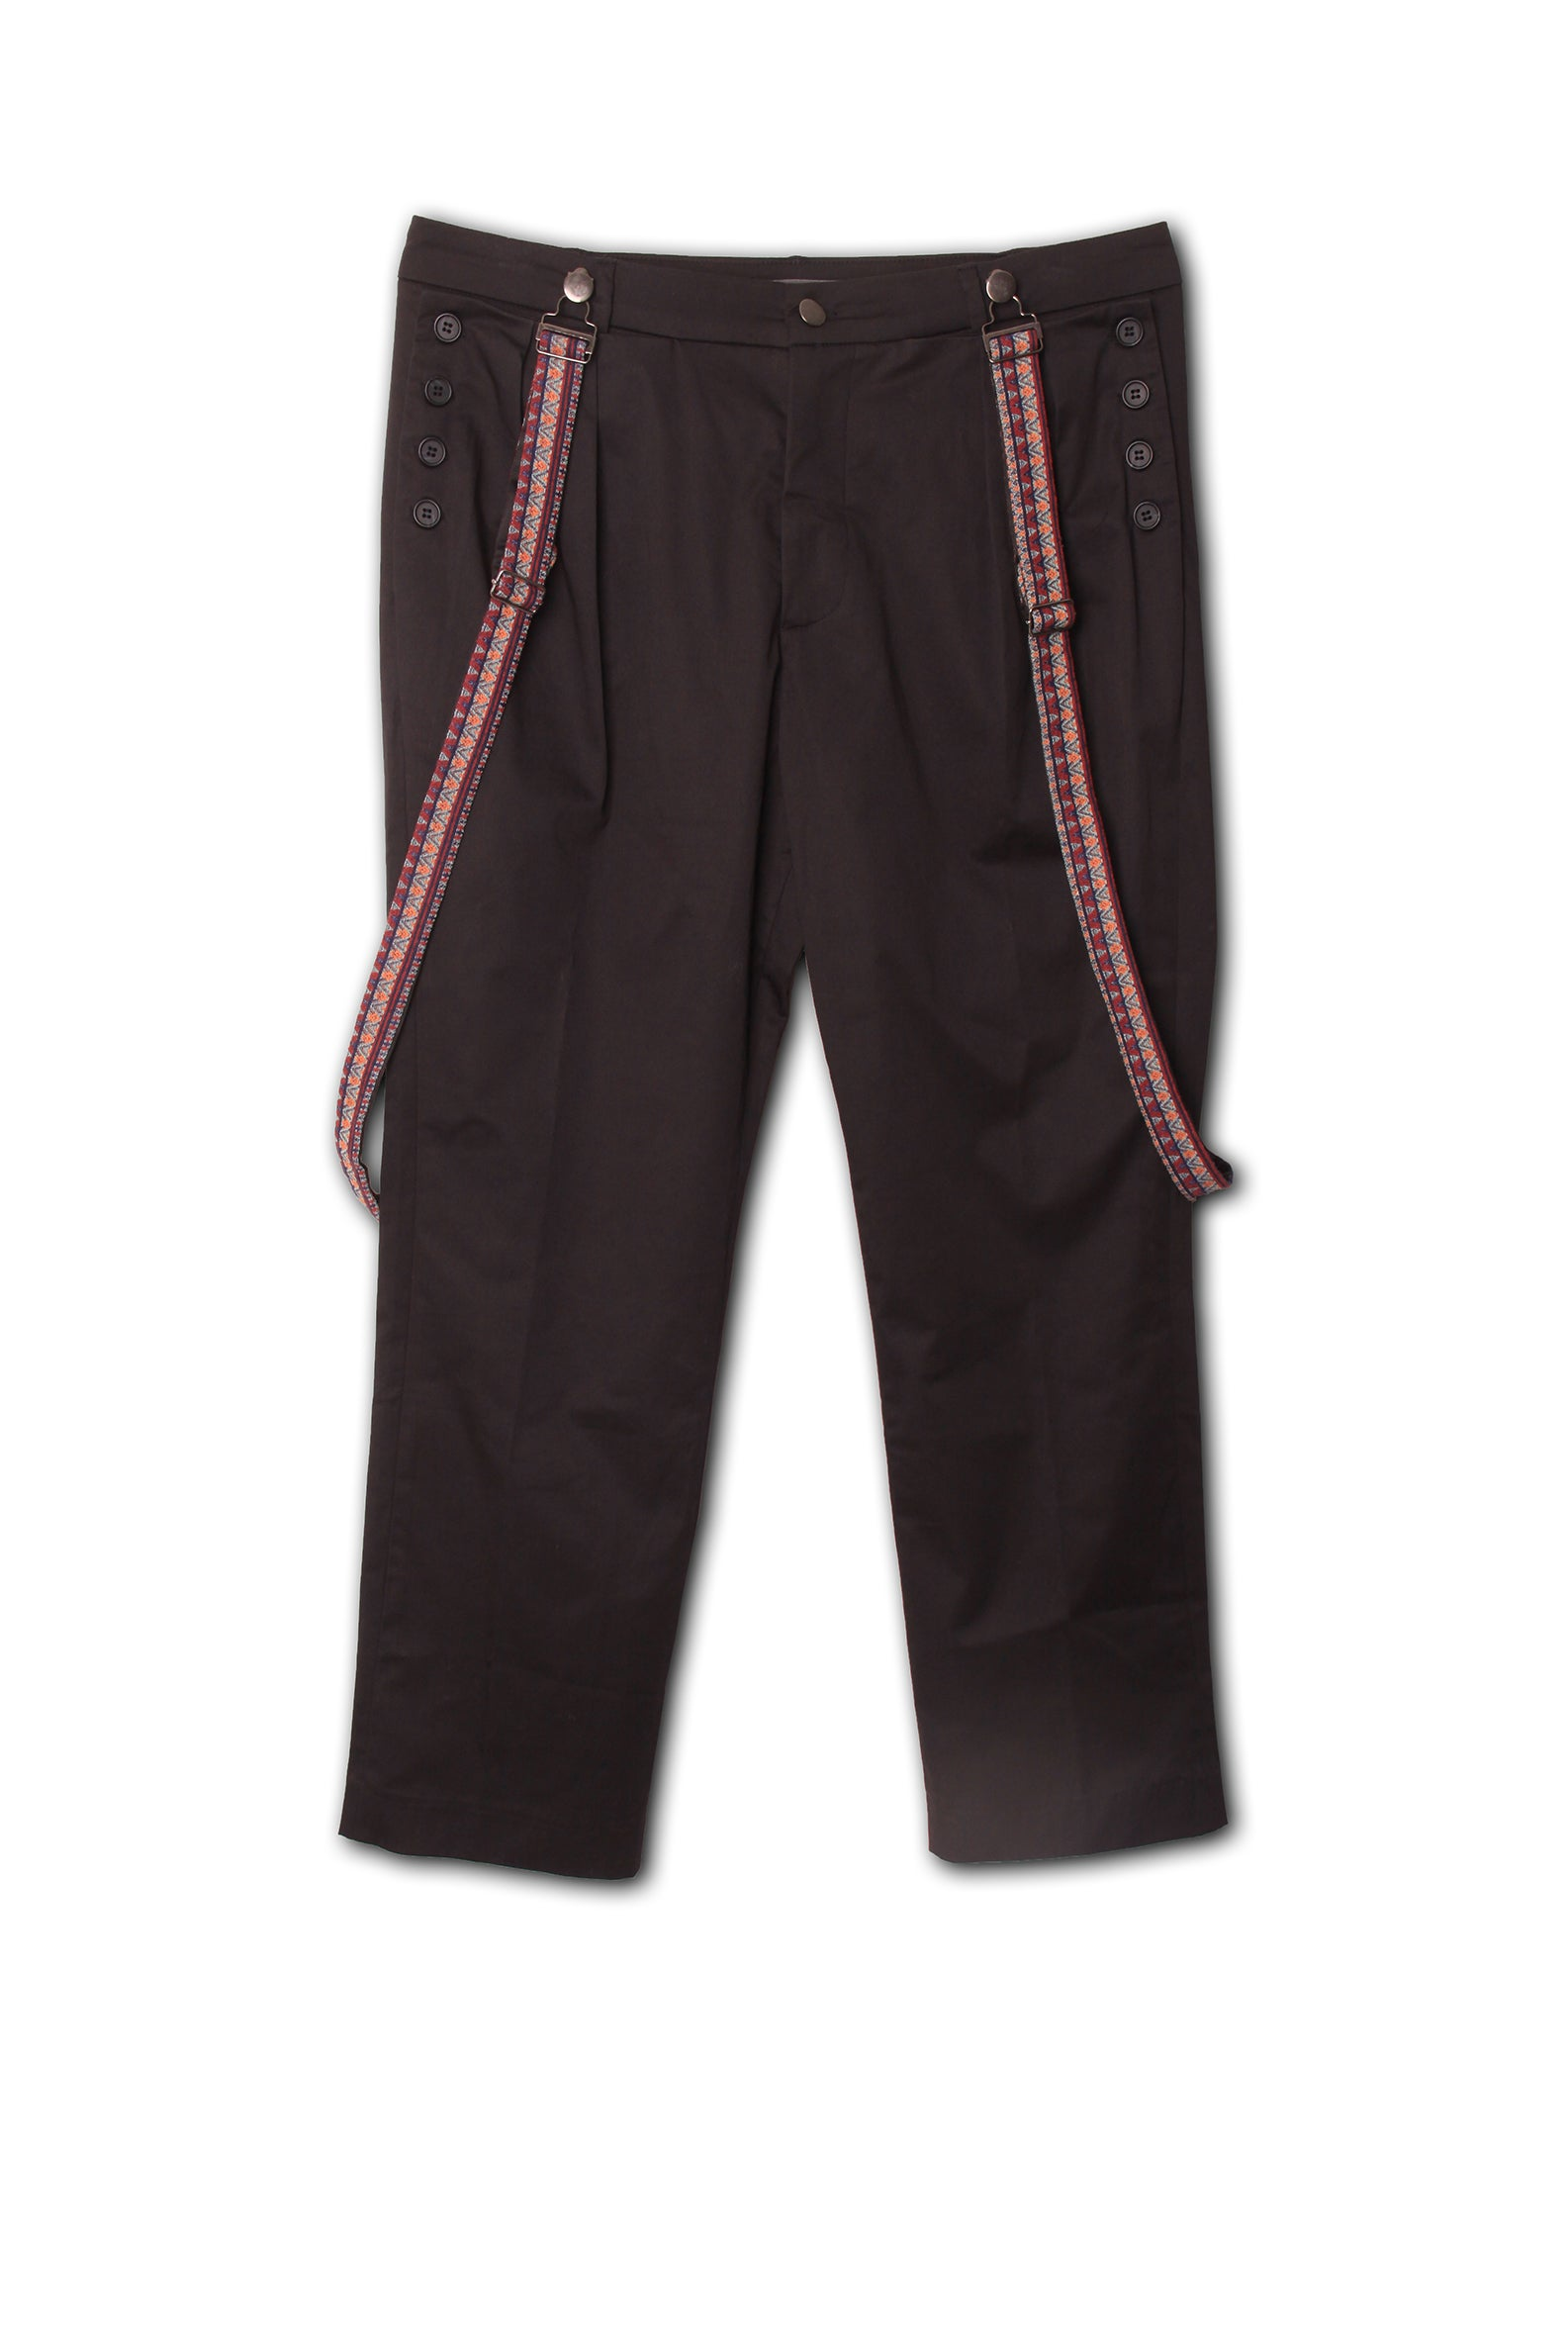 Ethnic work pant chino in black